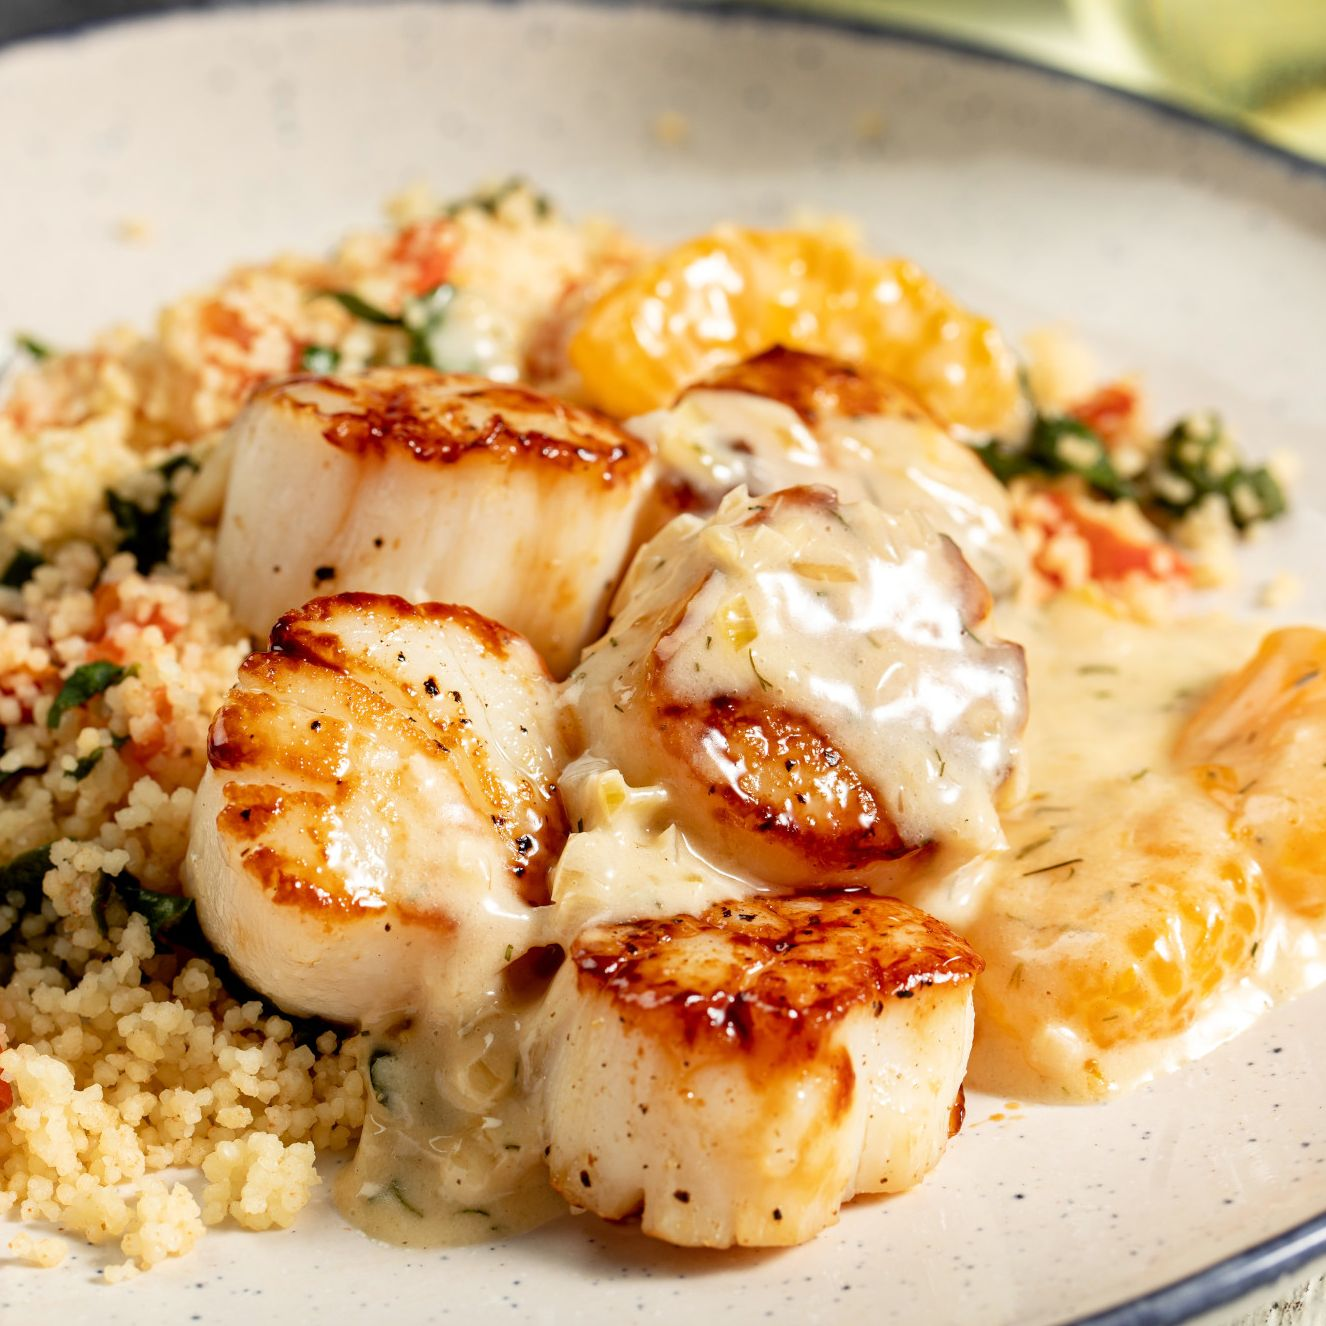 Seared Atlantic Calico Scallops with Citrus Dill Butter and Spinach Couscous